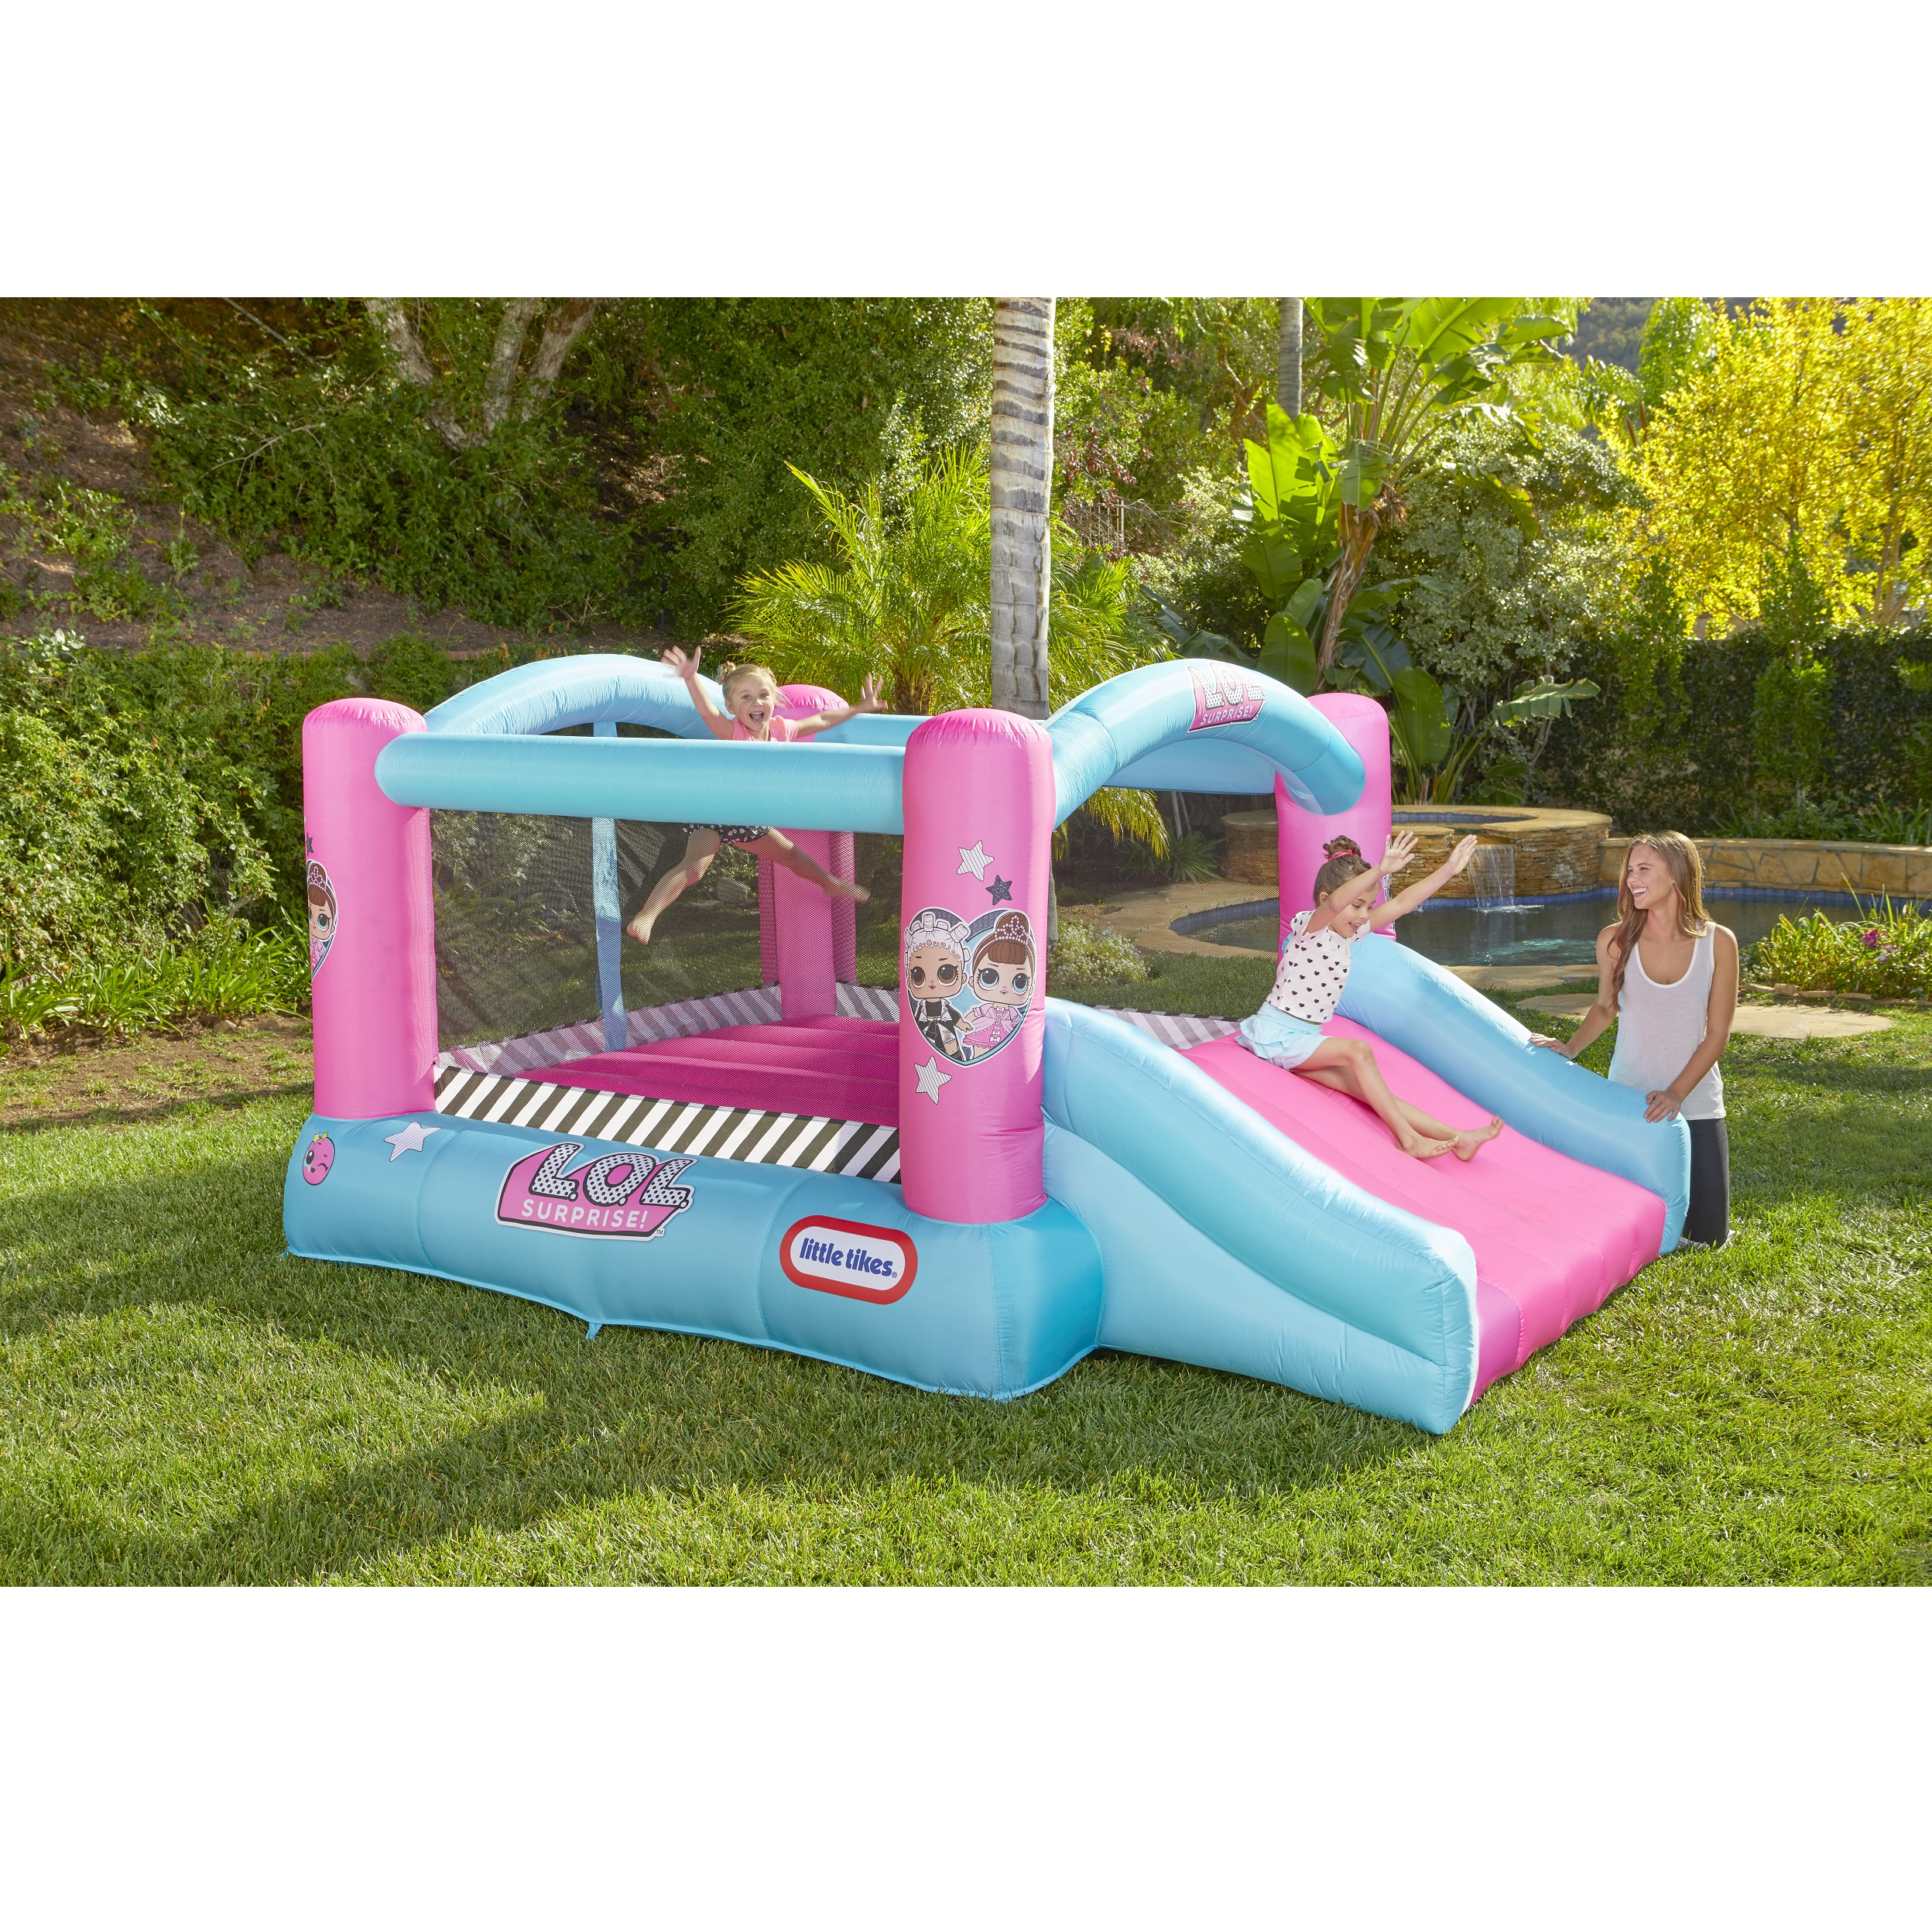 L O L Surprise Jump N Slide Inflatable Bounce House With Blower